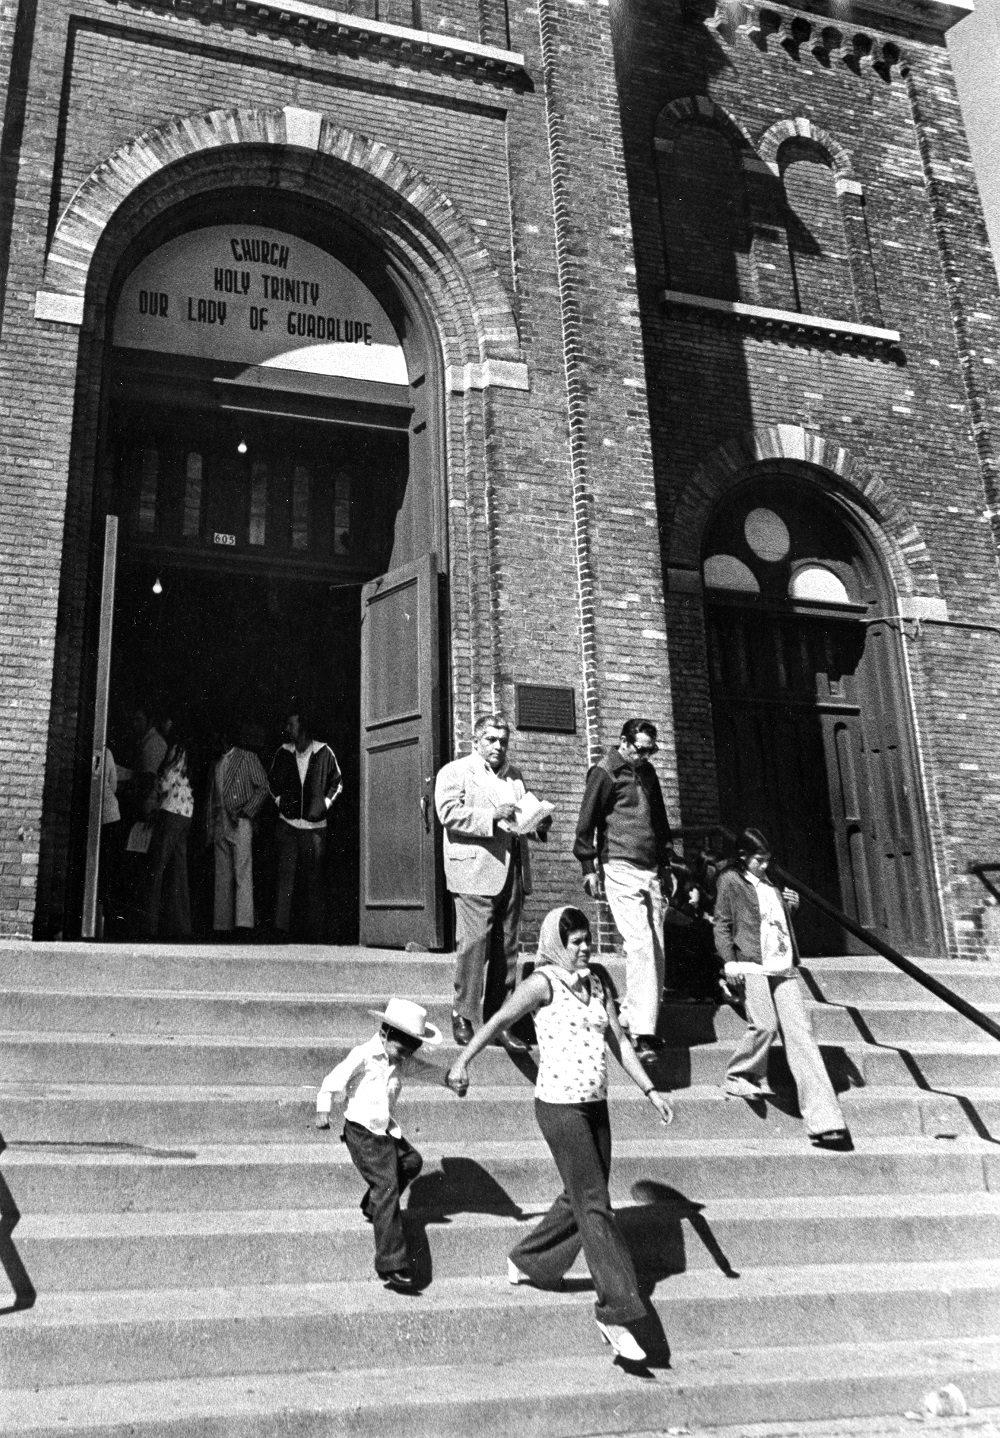 A group of parishioners exit Our Lady of Guadalupe after mass in 1975.